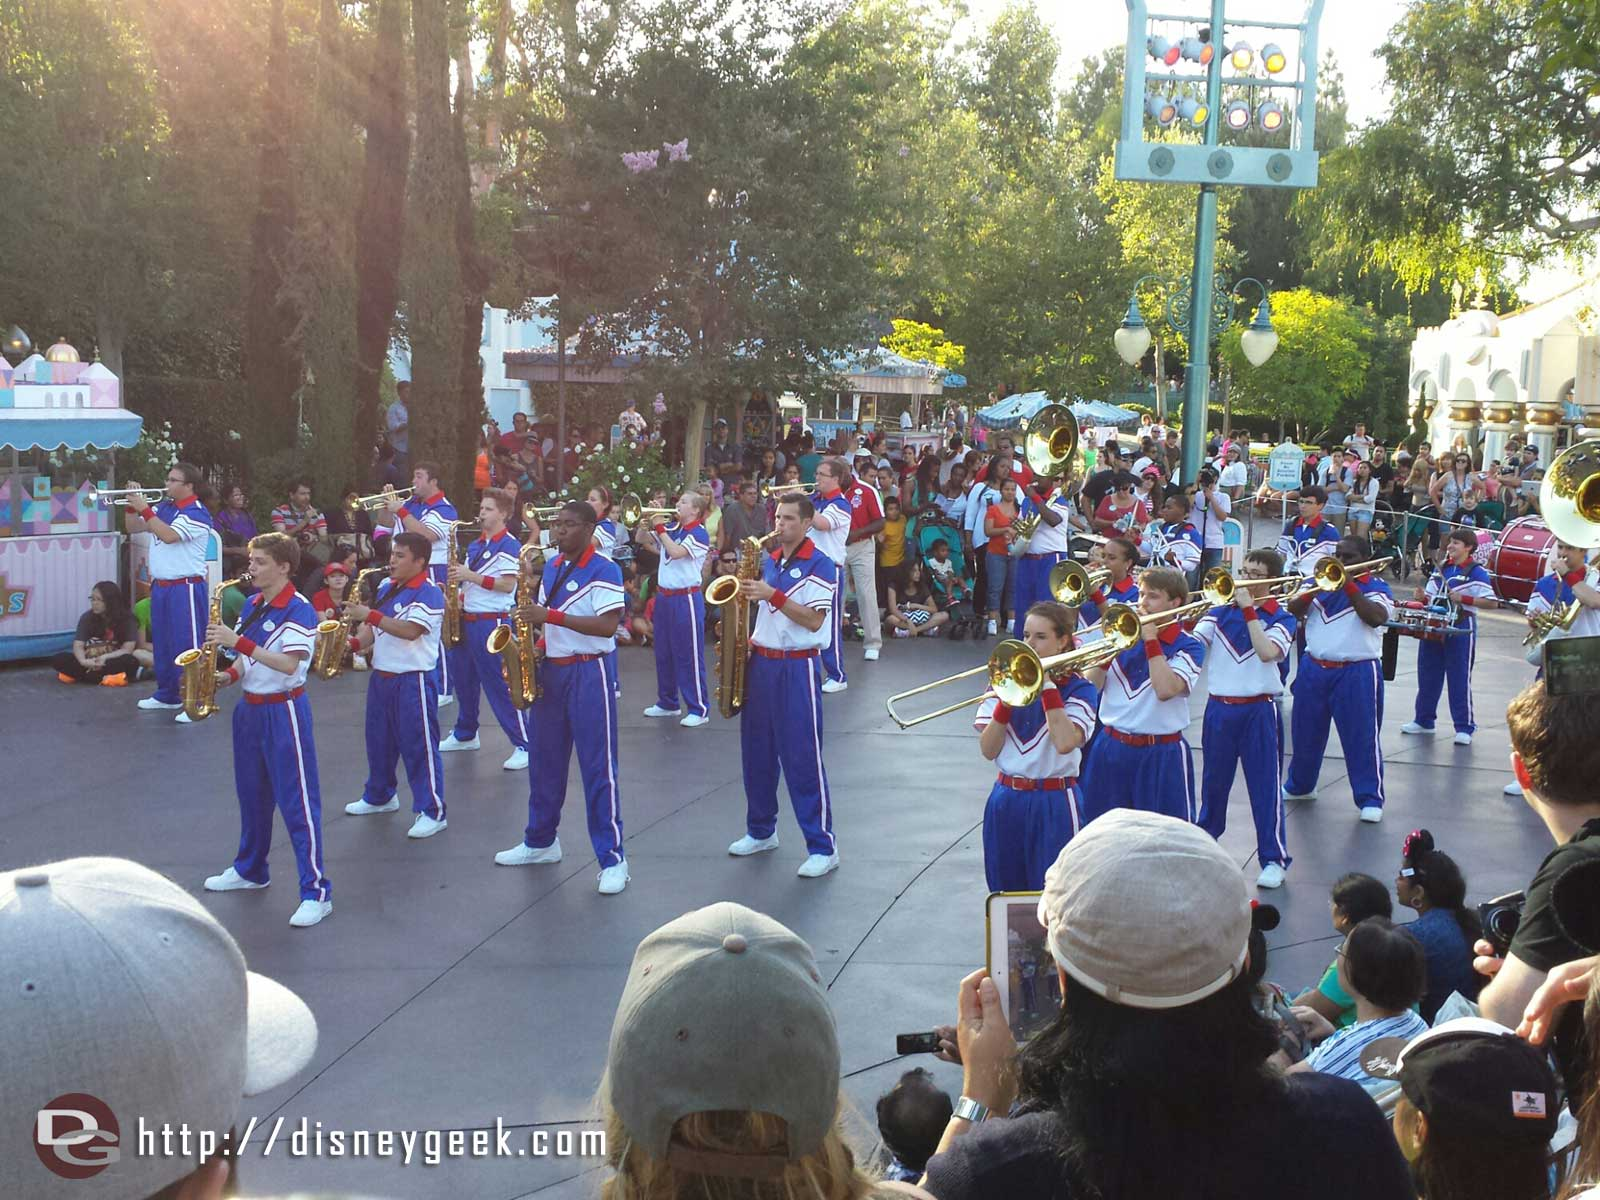 2014 #Disneyland All American College Band Disney movie medley being performed near small world at their final stop